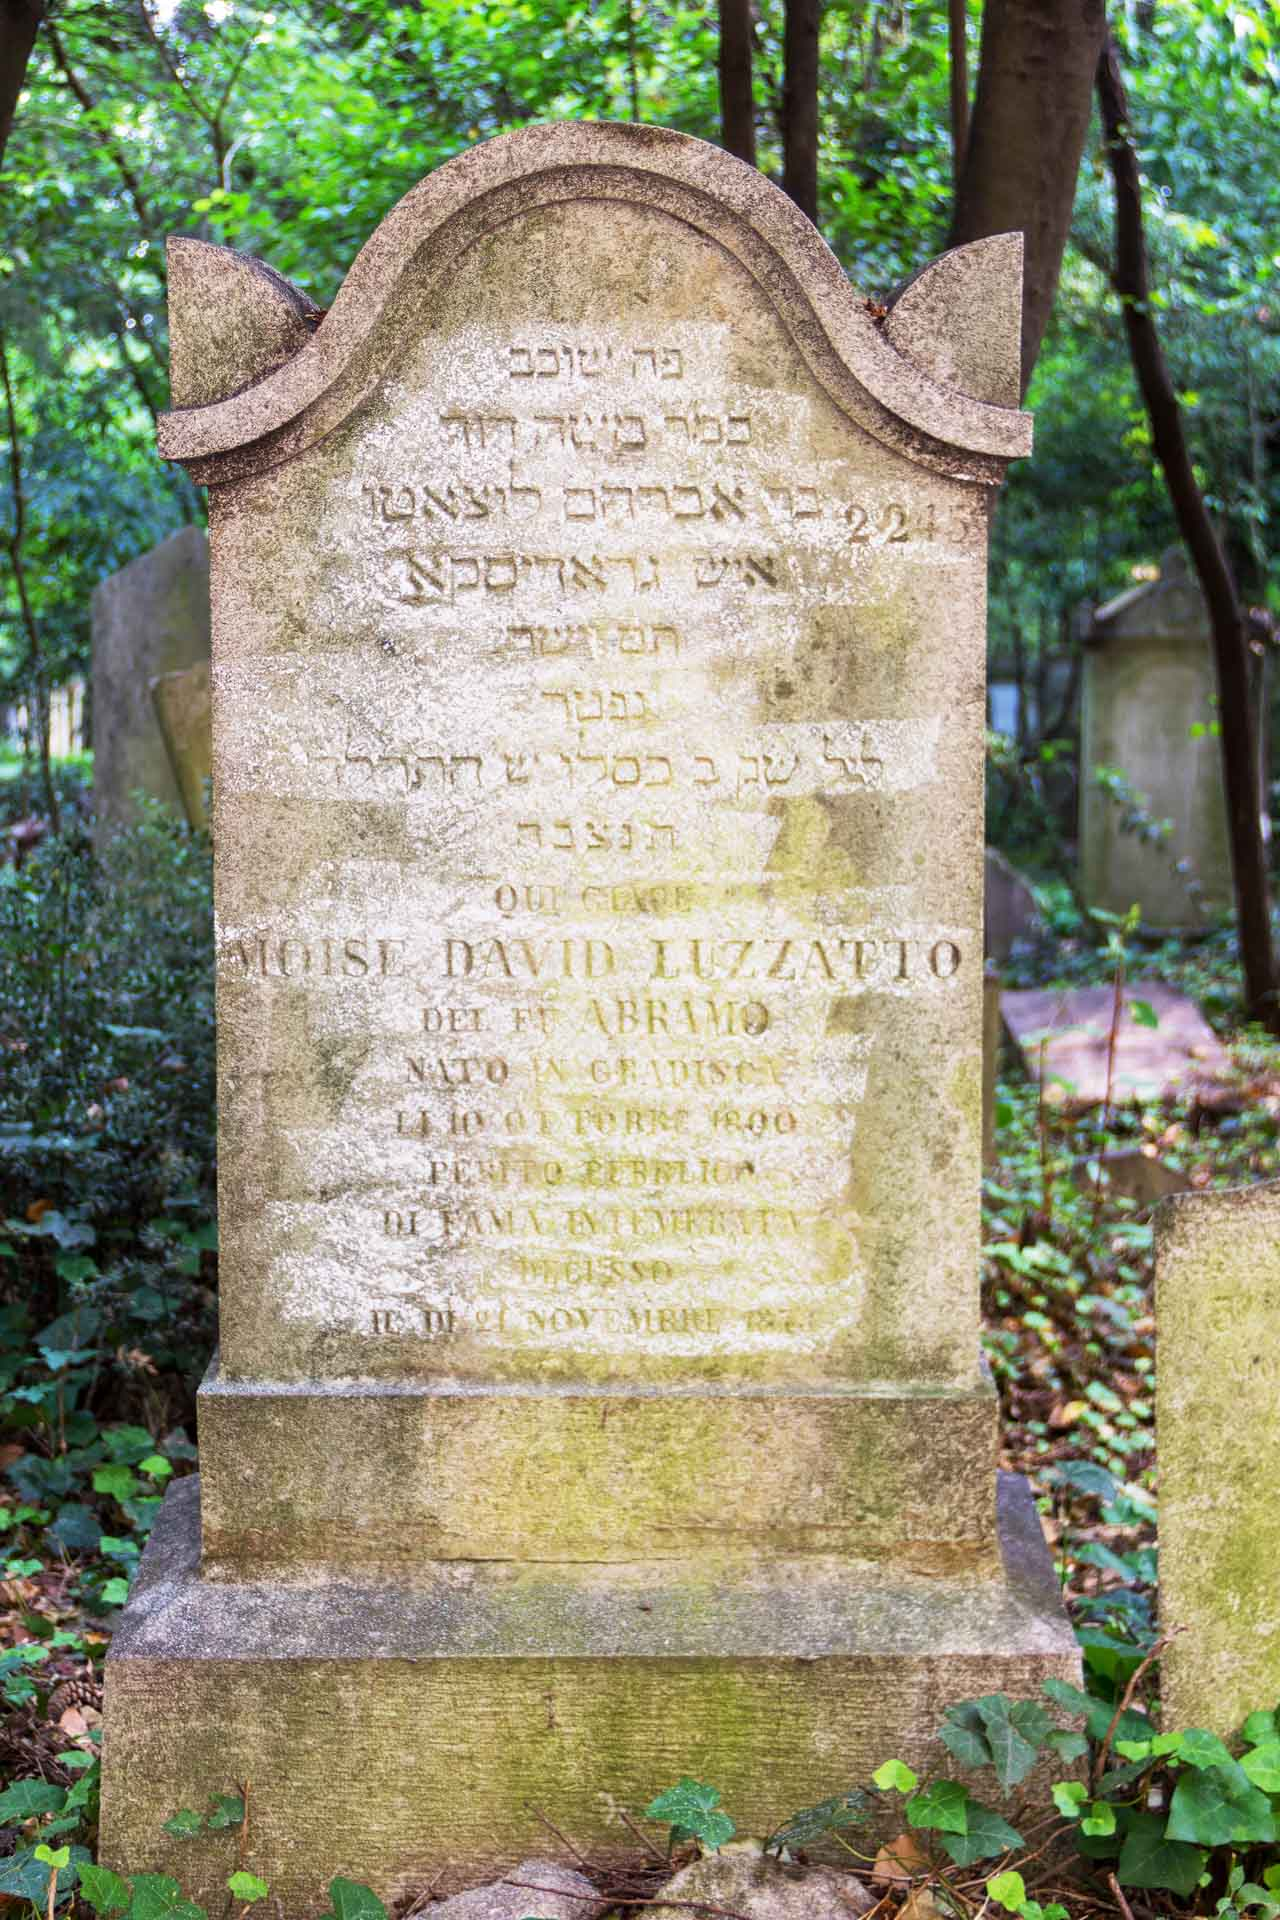 Grabstein Moisè Davide (Mose David) Luzzatto, 21. November 1873